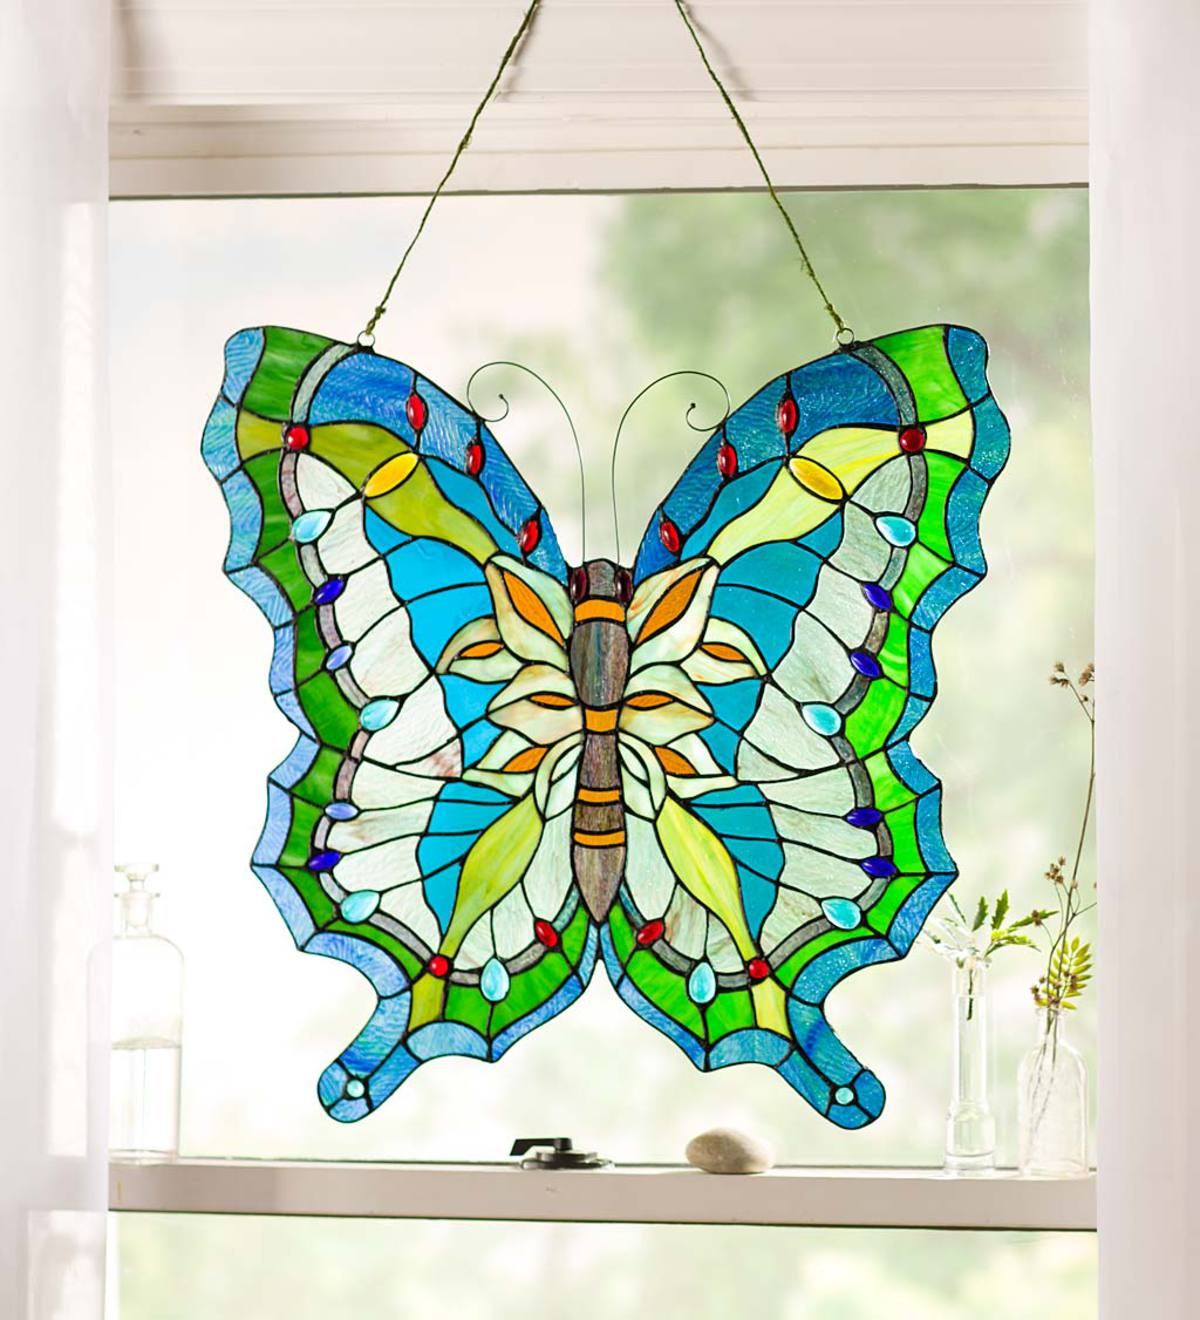 Hanging Stained Glass Butterfly